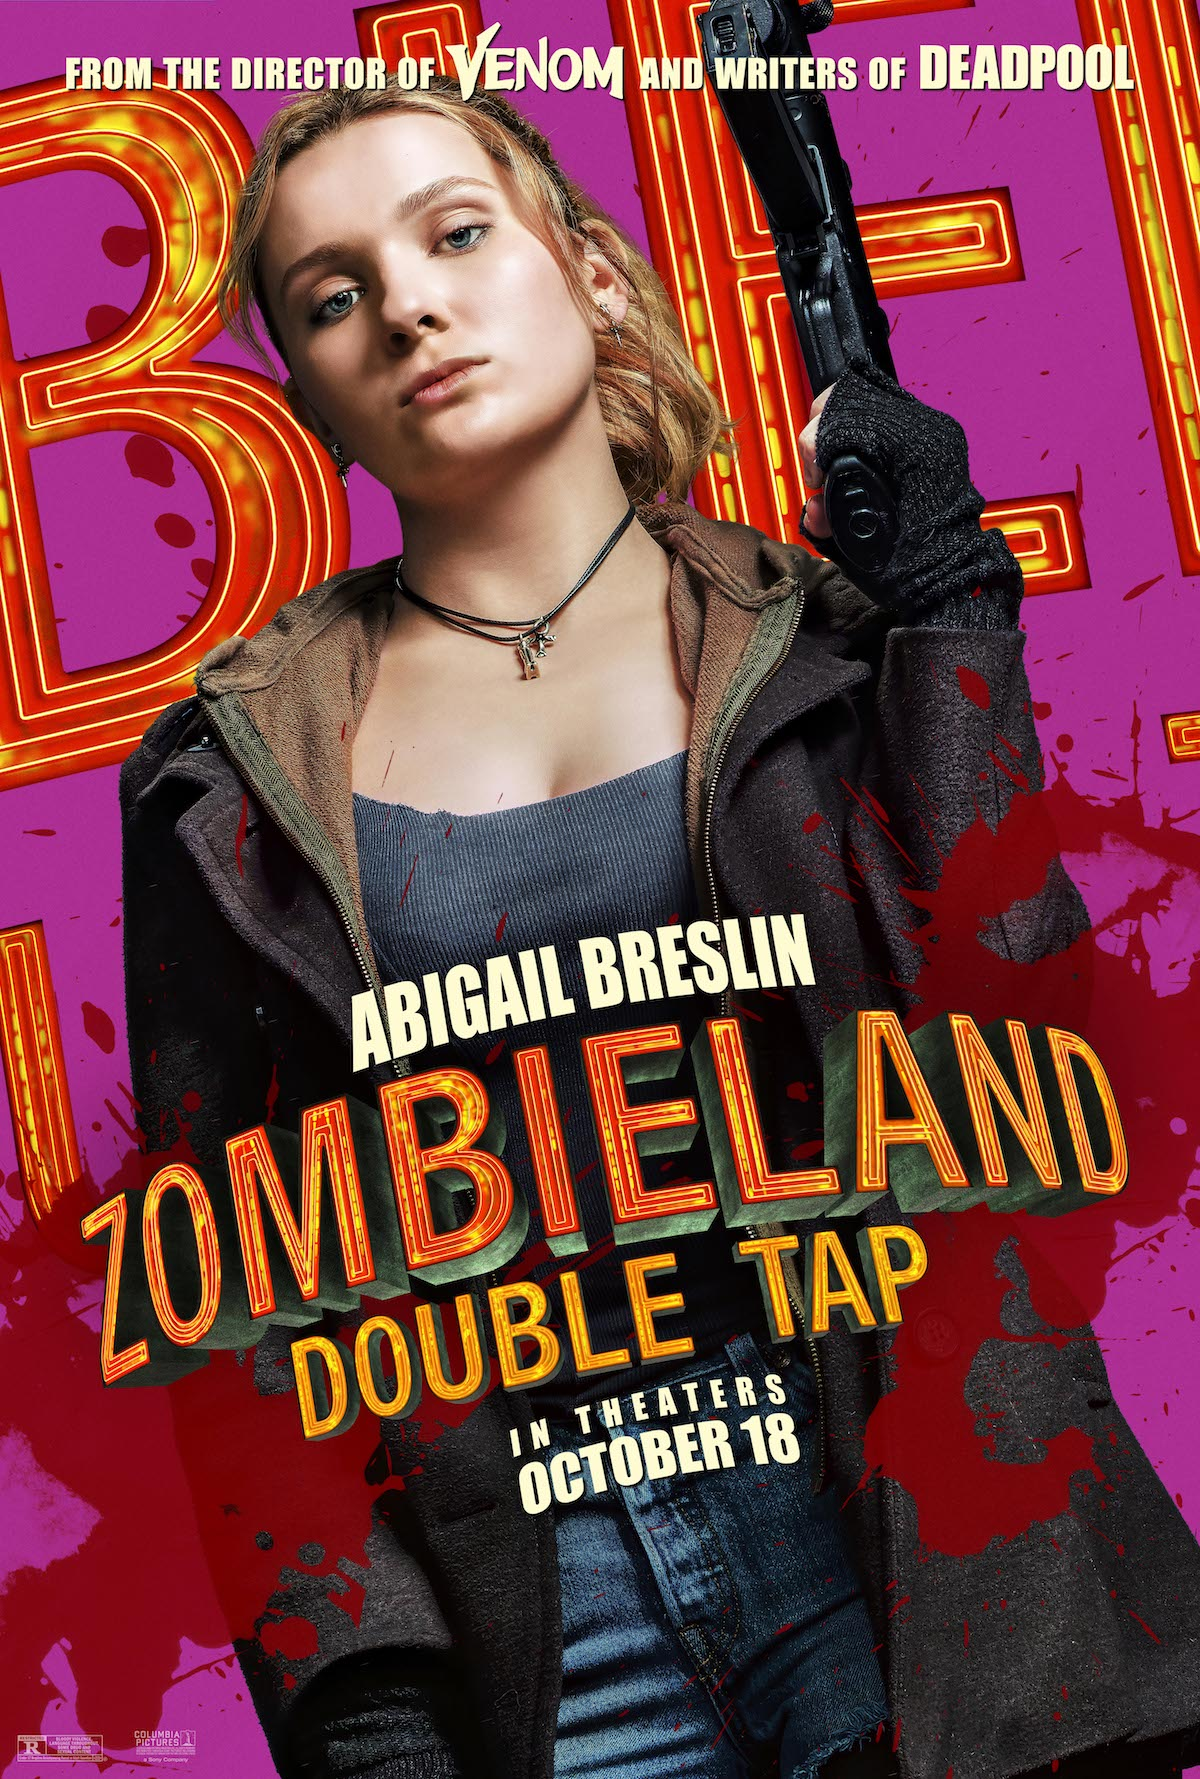 Zombieland 2 Double Tap Poster Character Movie 2 Silk Canvas Poster Print 32x48/'